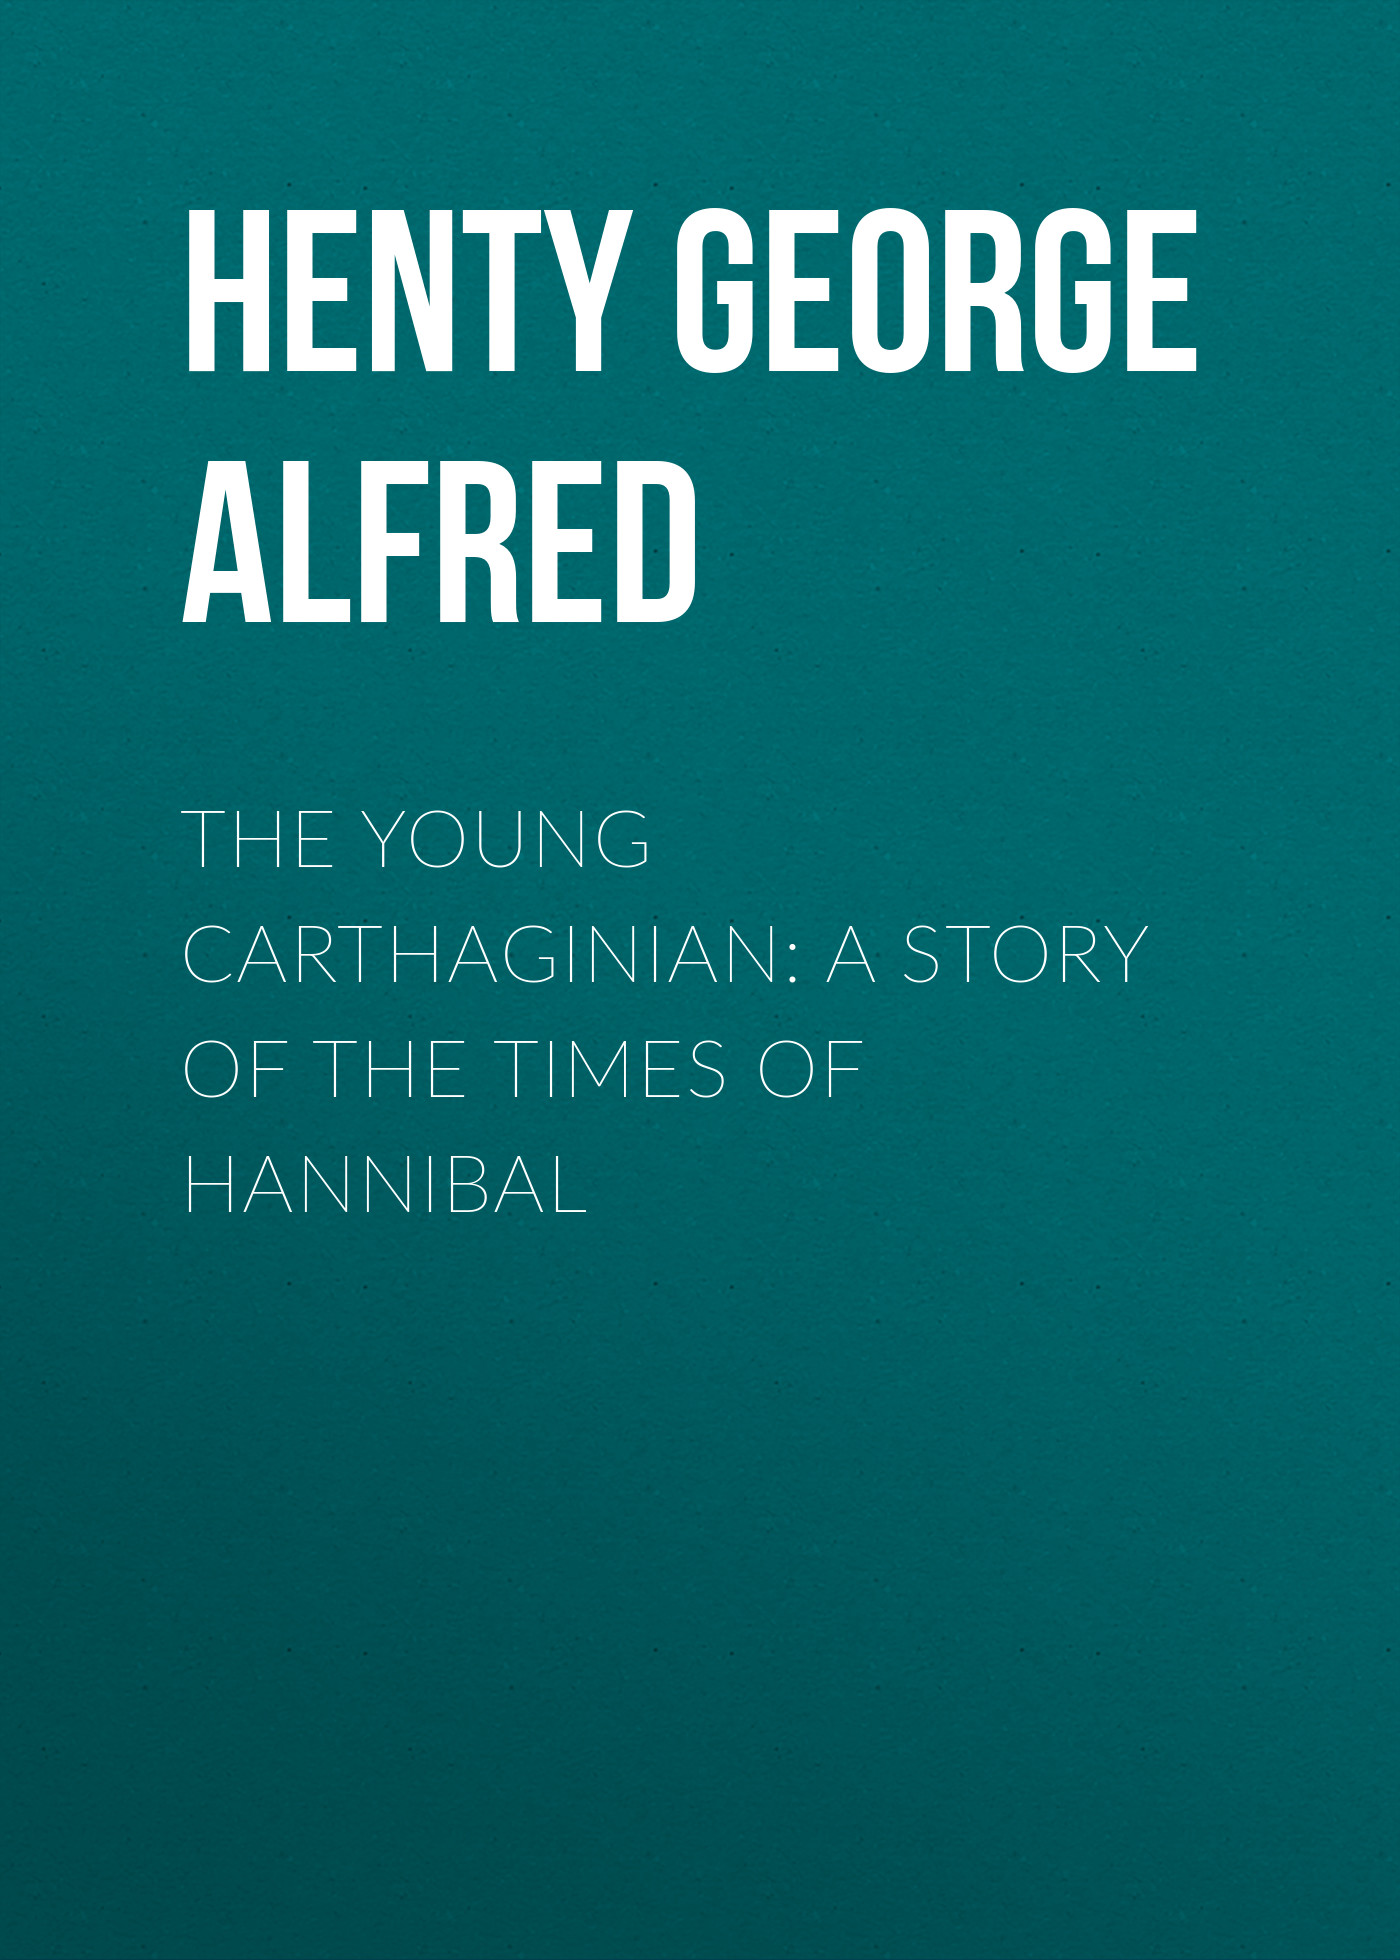 Henty George Alfred The Young Carthaginian: A Story of The Times of Hannibal